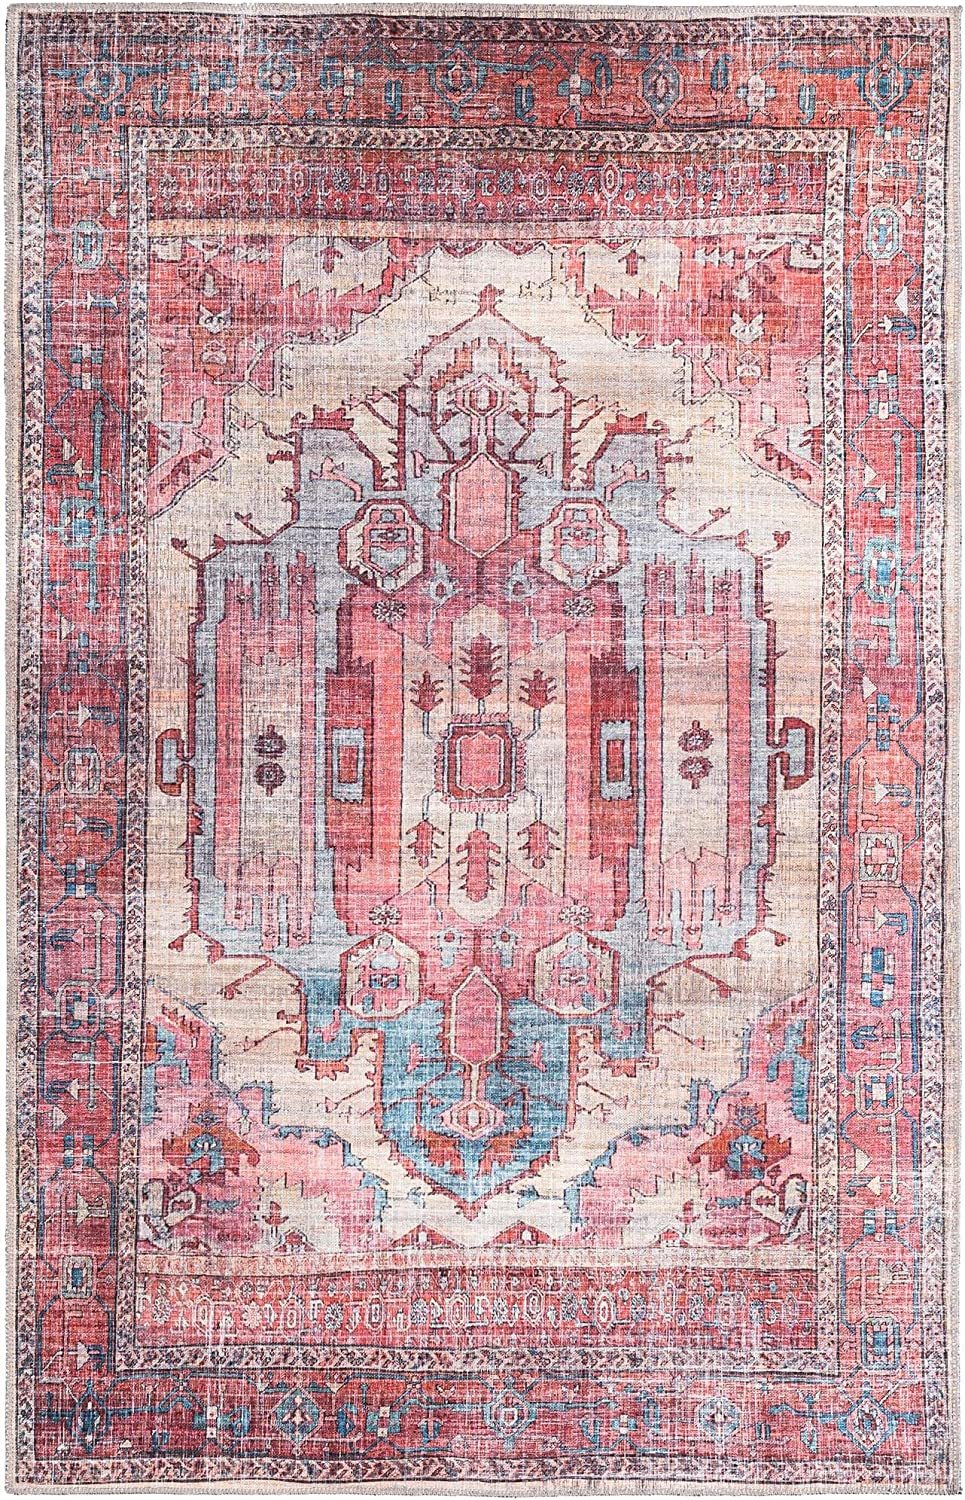 Quality inspection Rugs.com Maahru Collection Max 76% OFF Washable Rug – 8' Low-Pile 5' Beige x